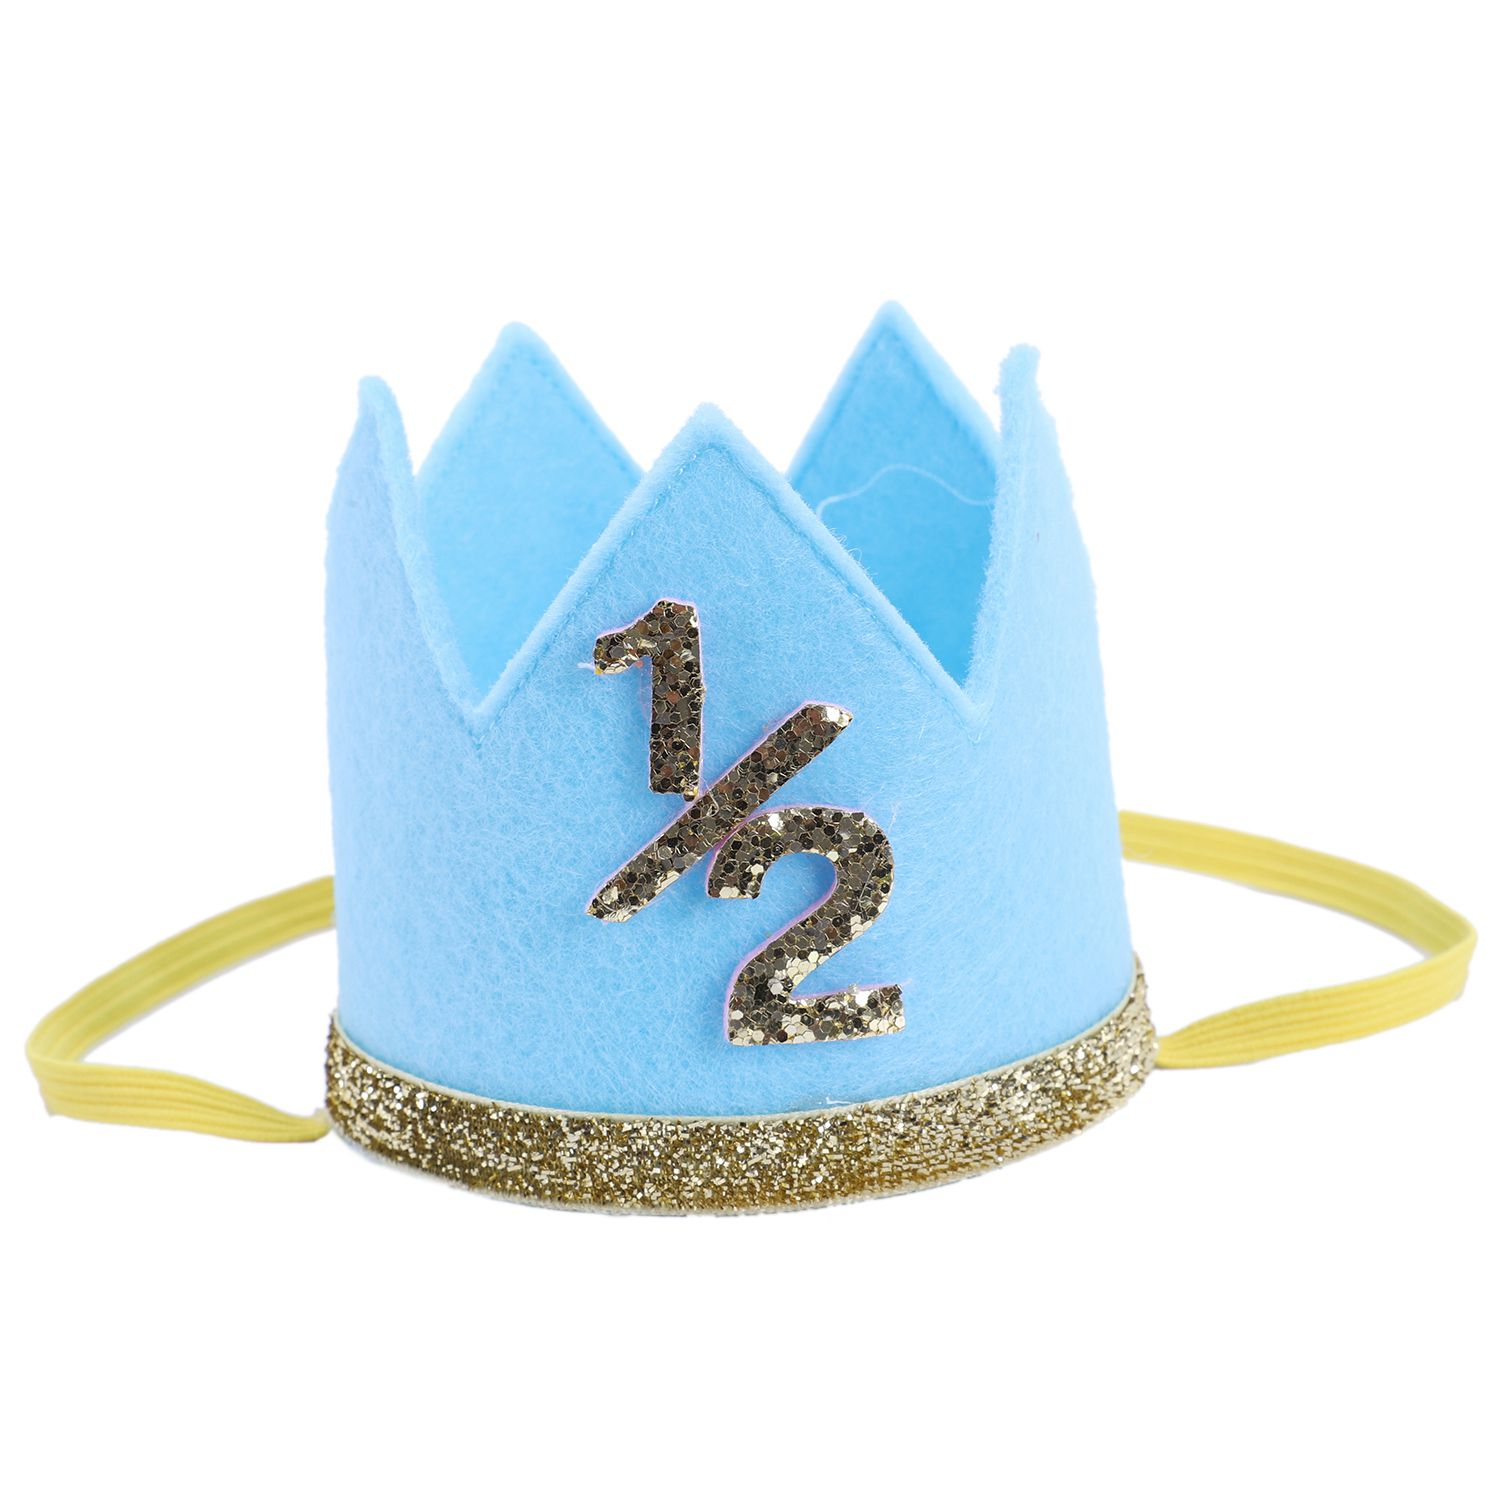 FBIL-Newborn Infant Toddler Baby Girl Boy Half 1/2 First Second Third Birthday Crown Party Cake Smash Headband Hair Accessorie